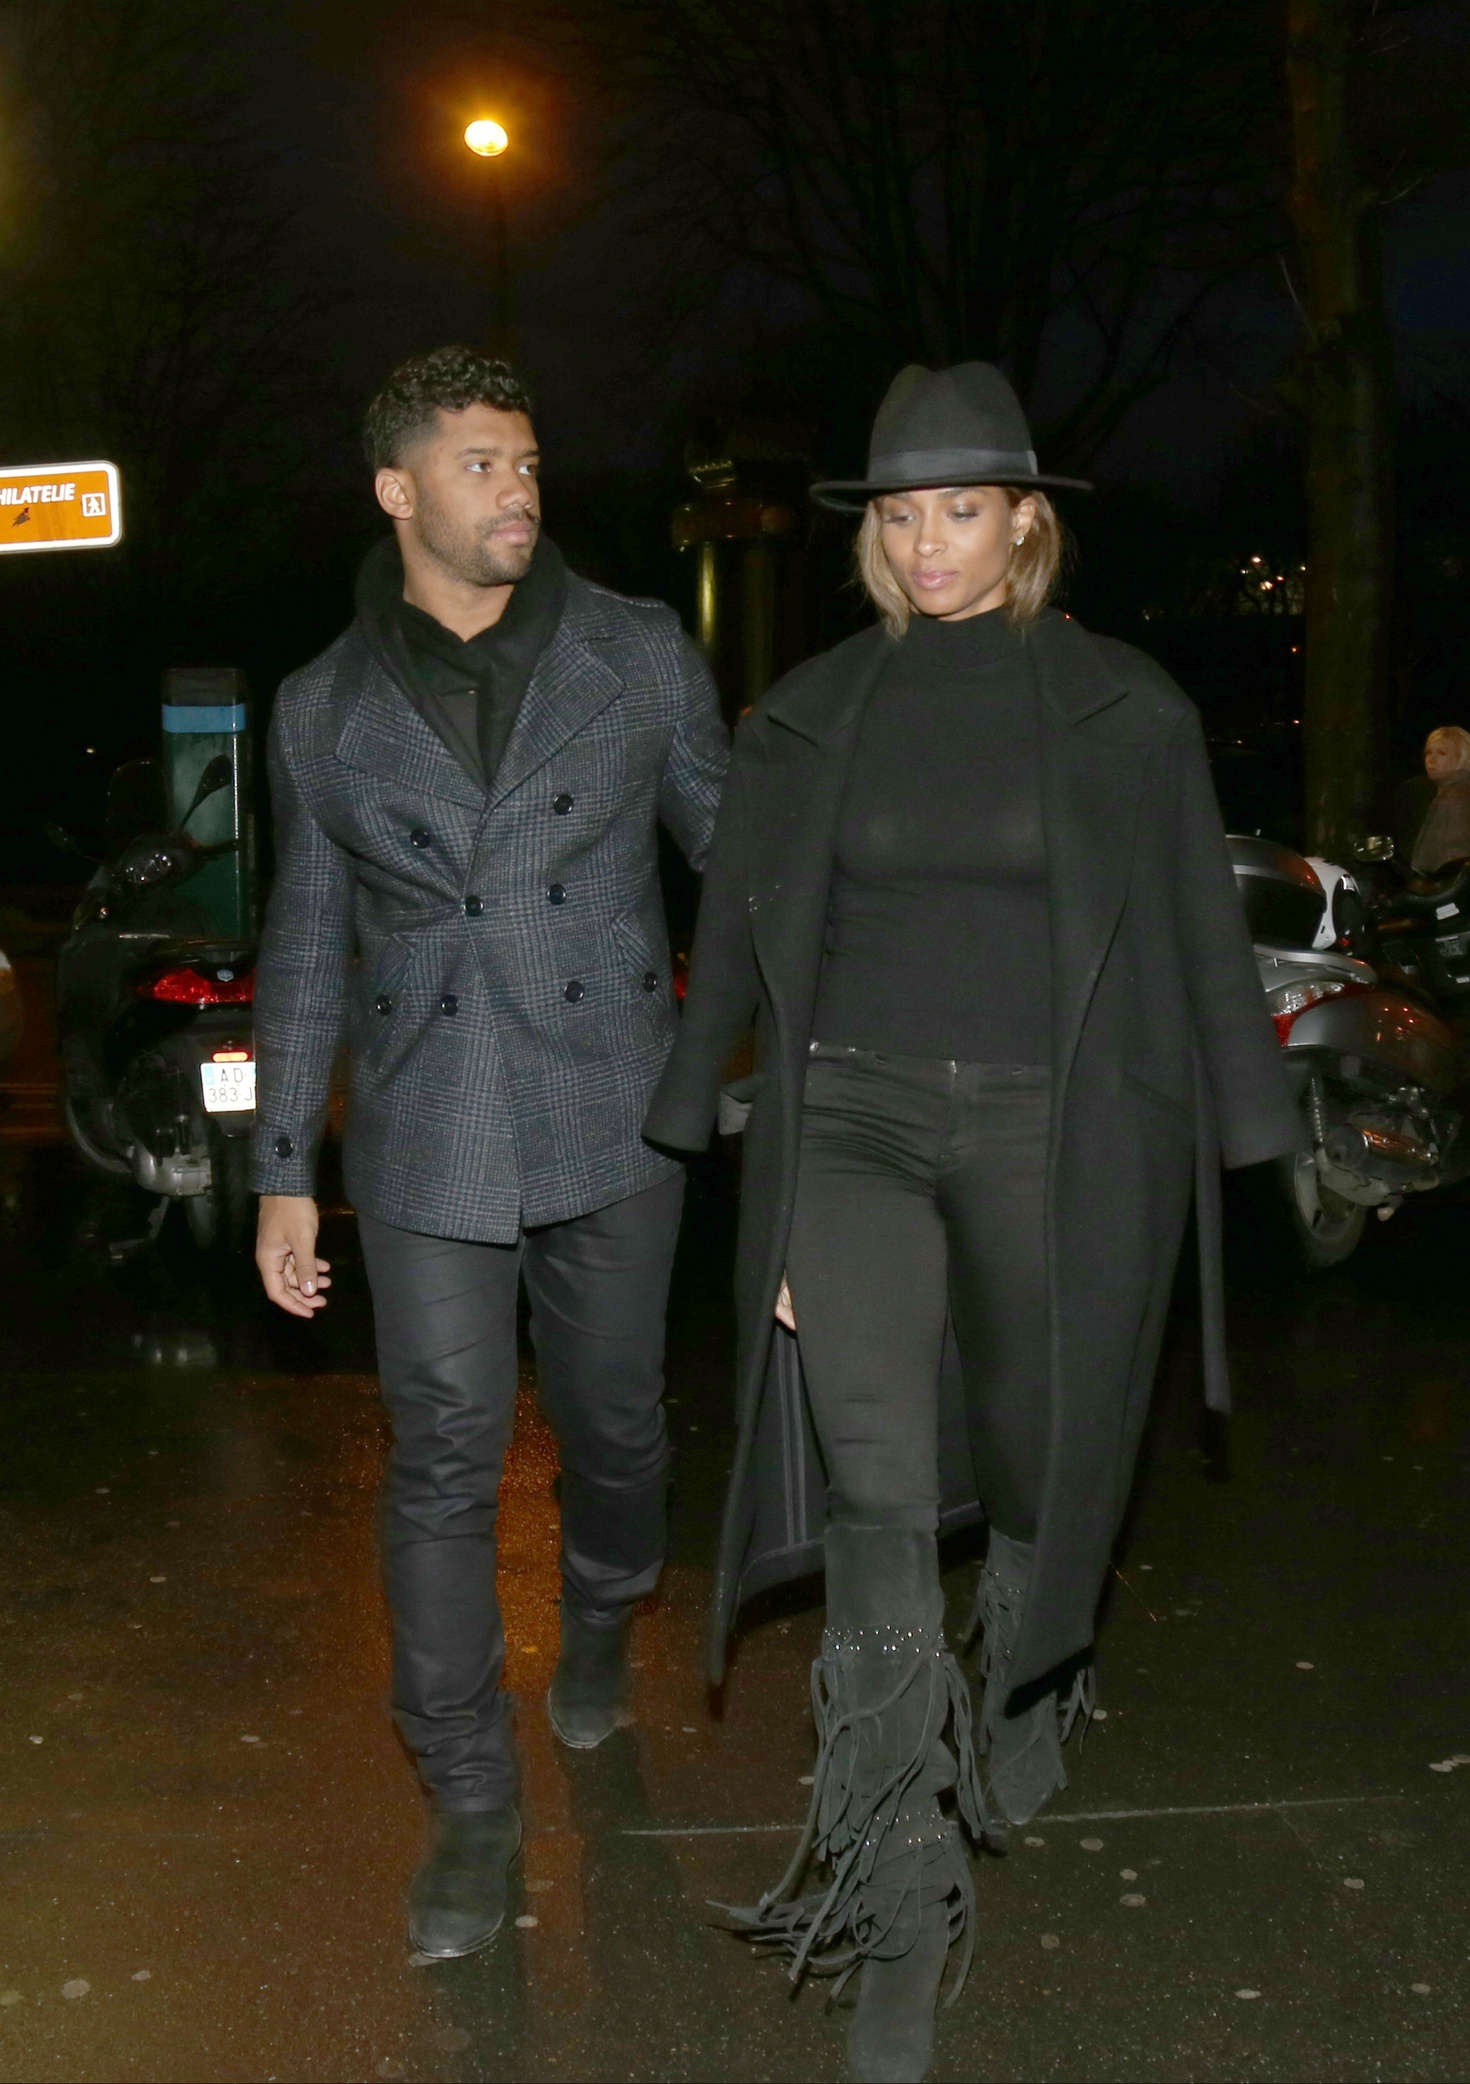 Ciara and her boyfriend Leaving Lolita Restaurant in Paris